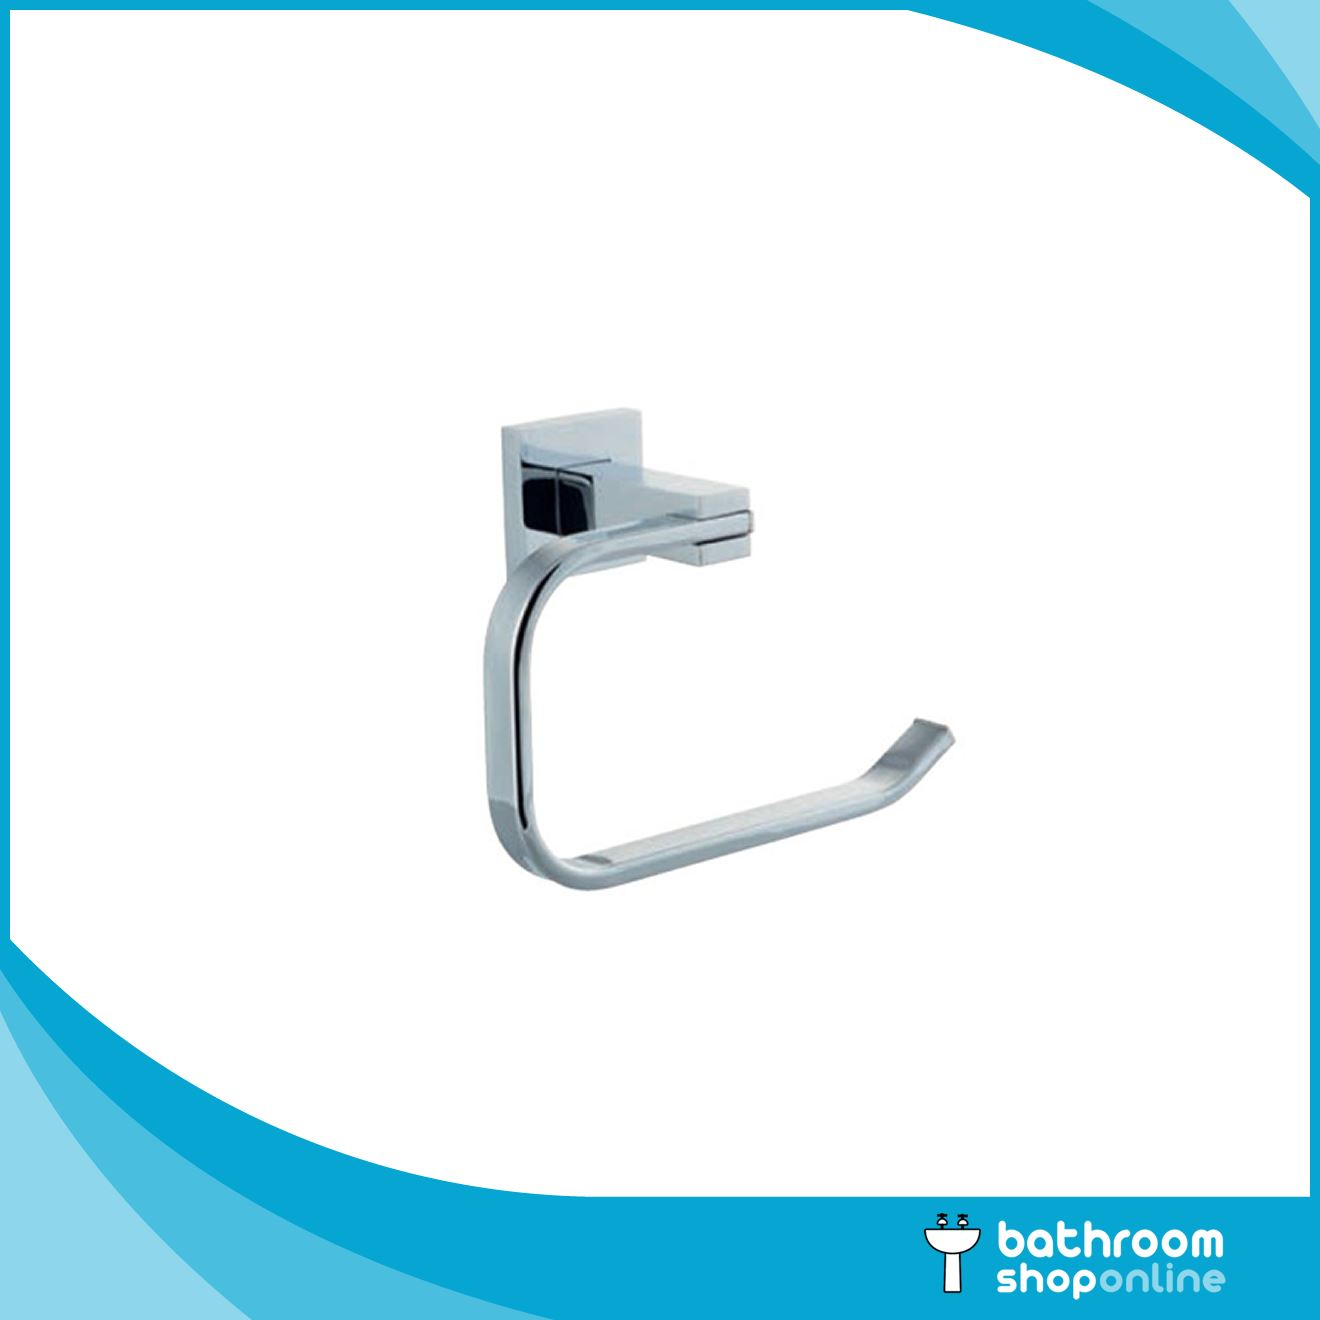 Bathroom accessories soap dishes tooth brush towel rail toilet brush holder ebay - Bathroom accessories towel rail ...